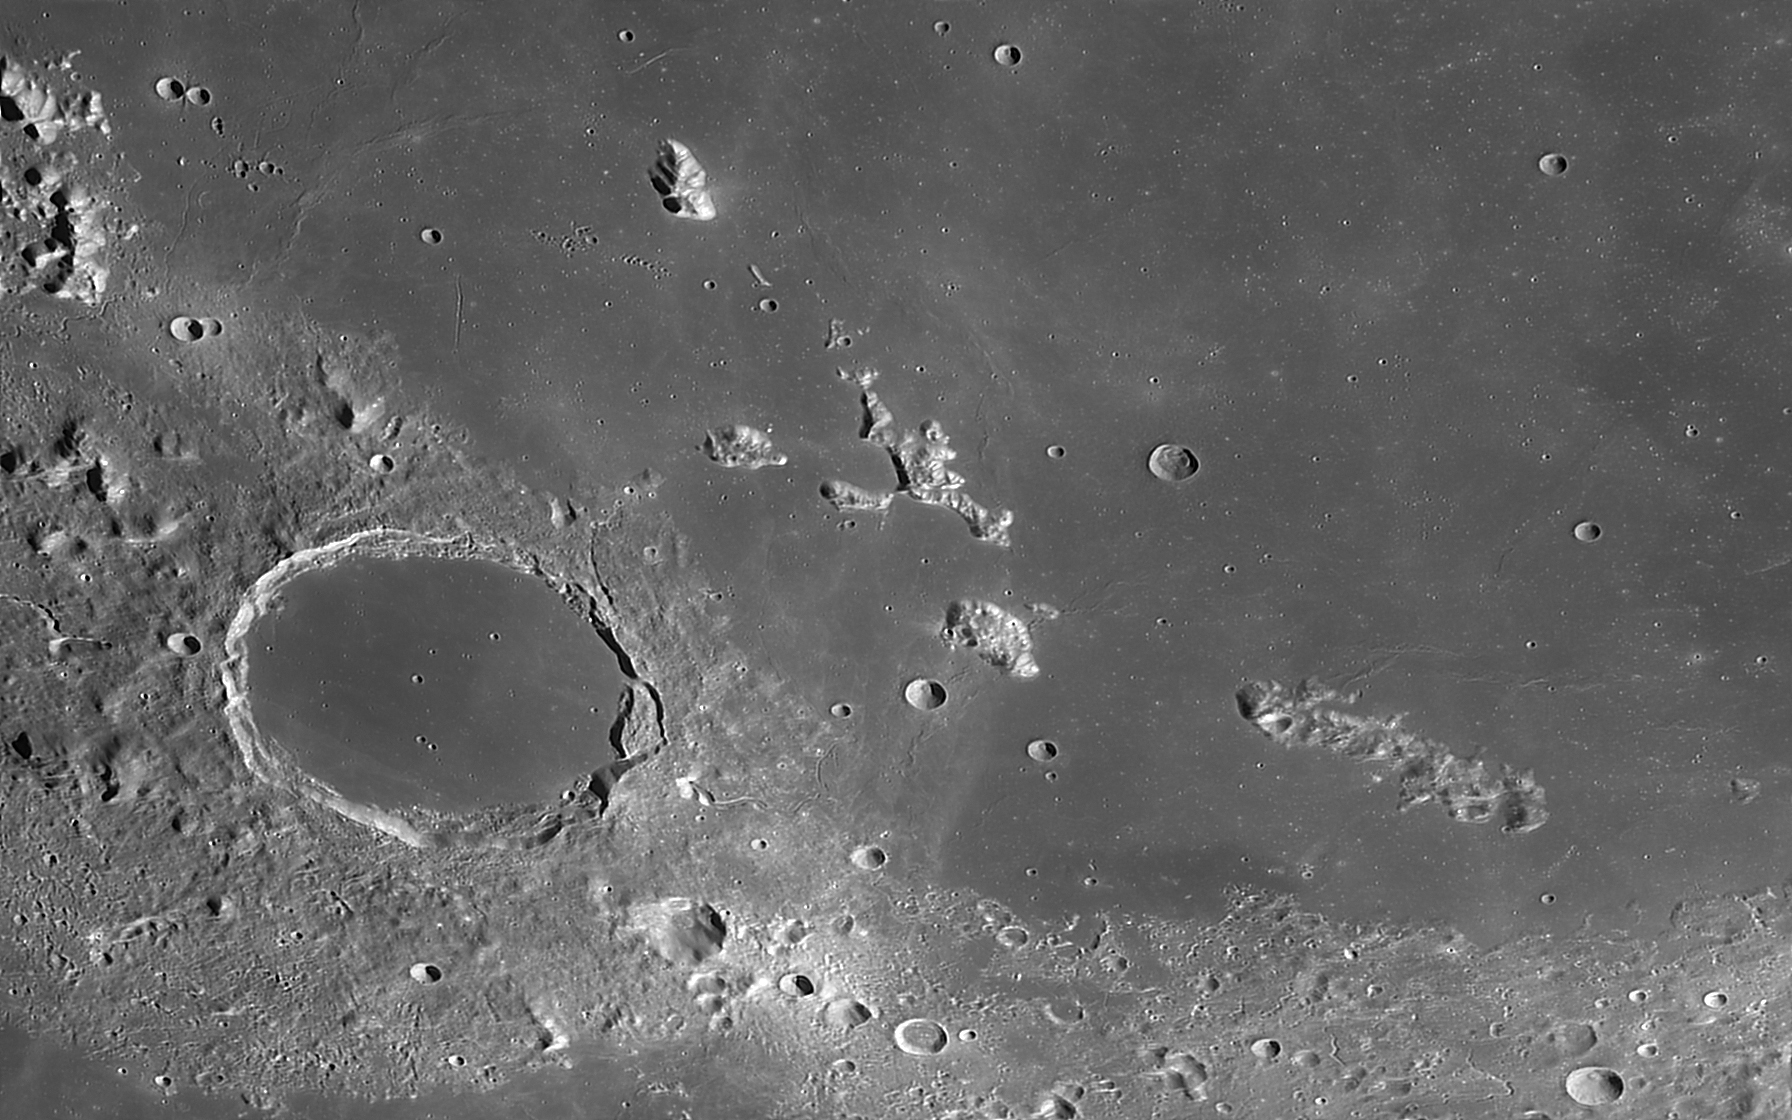 Plato2-9Aug2020-2h59UT-C14-B1920-green.j